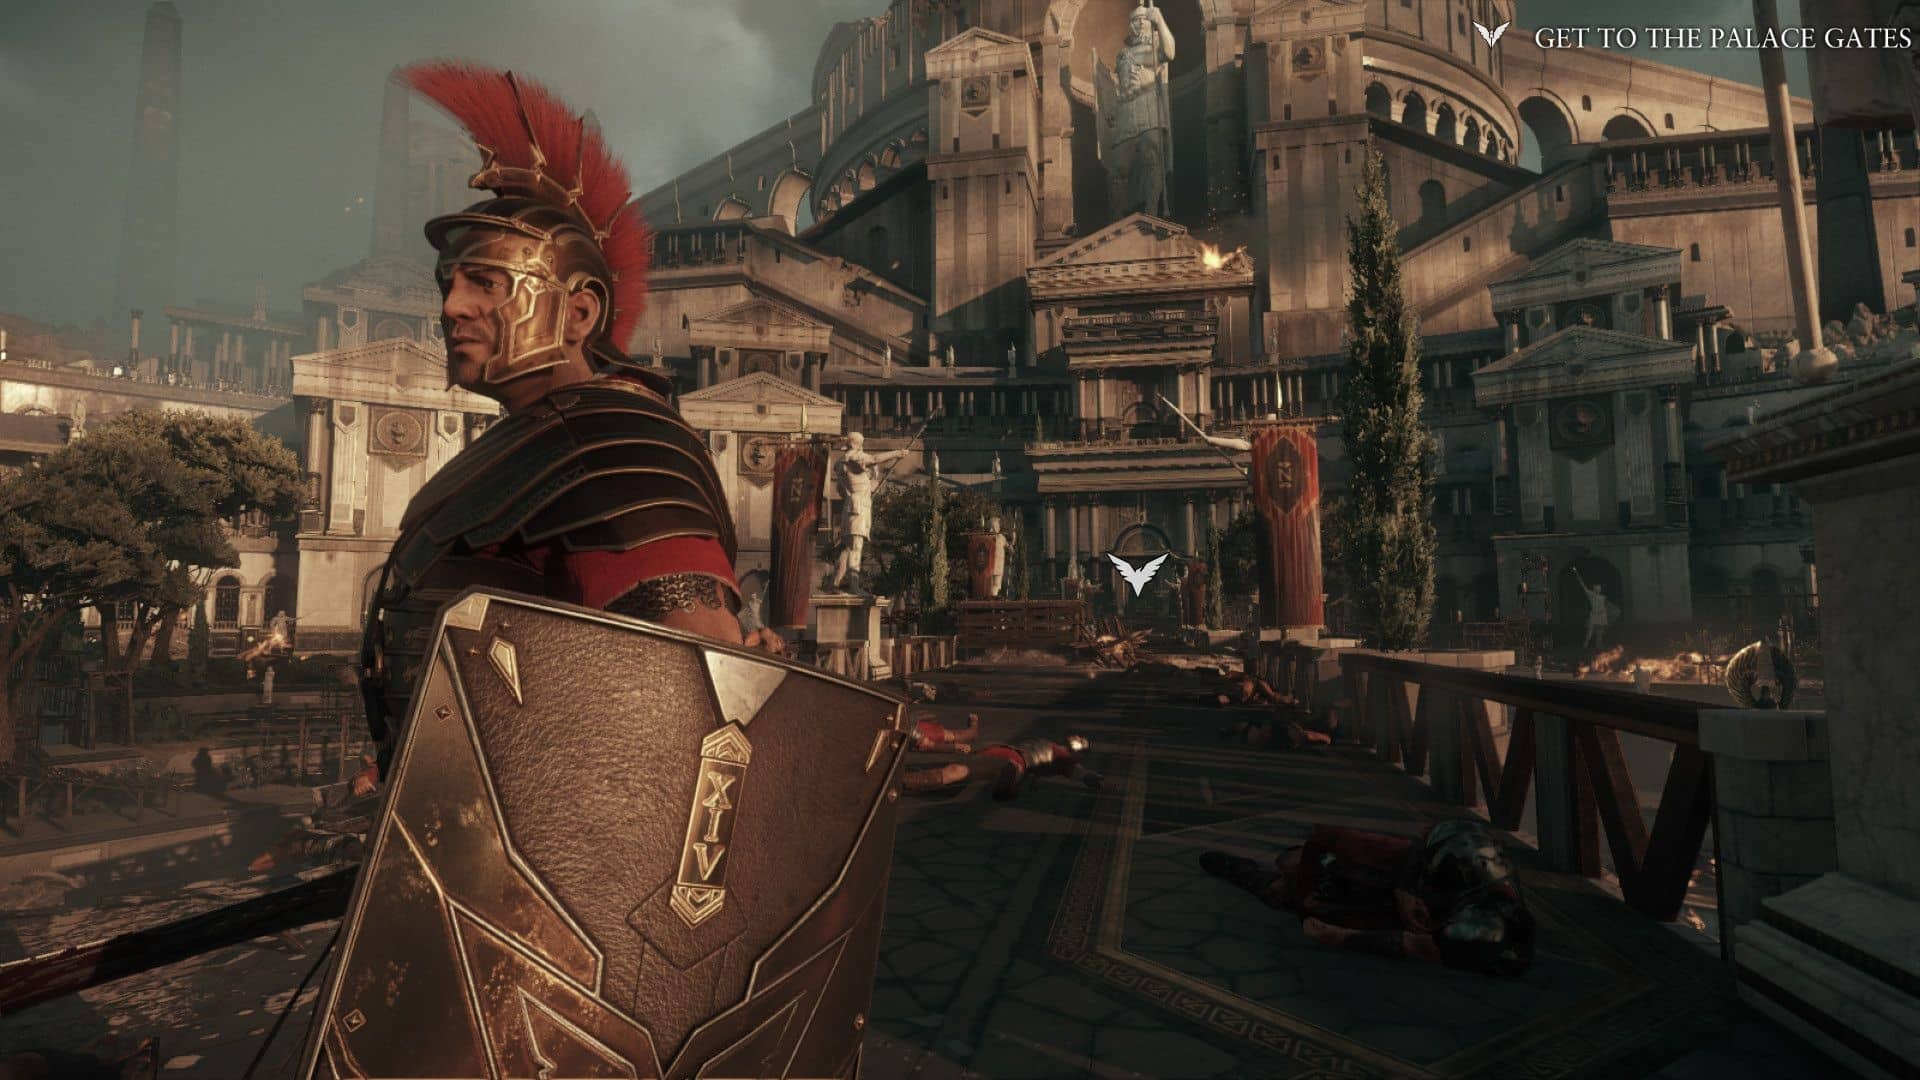 Ryse: Son of Rome is past and future of gaming and game design between Xbox One and Xbox Series X next-generation systems Crytek launch game